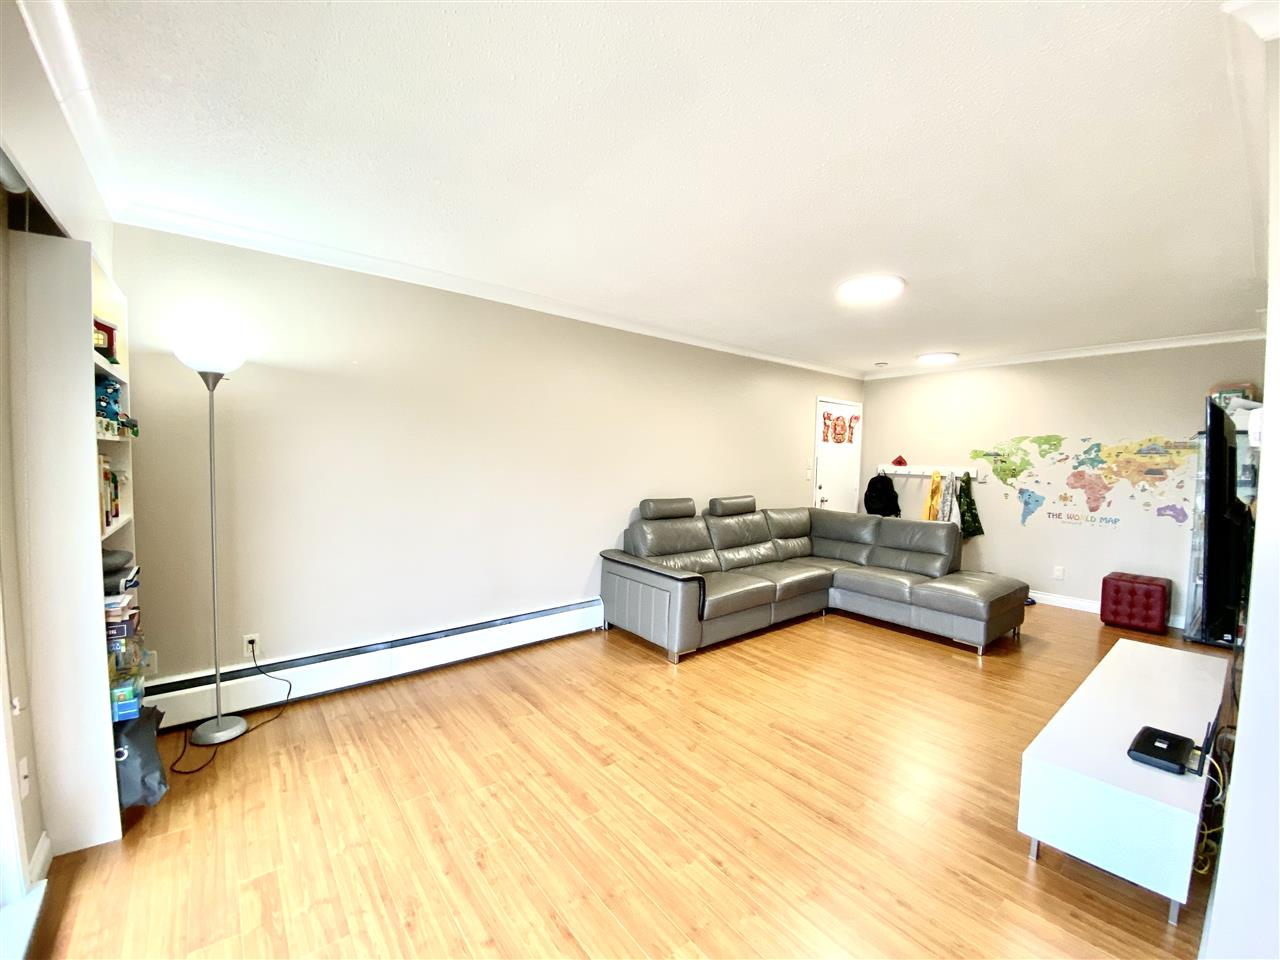 308 8020 RYAN ROAD - South Arm Apartment/Condo for sale, 2 Bedrooms (R2511269)